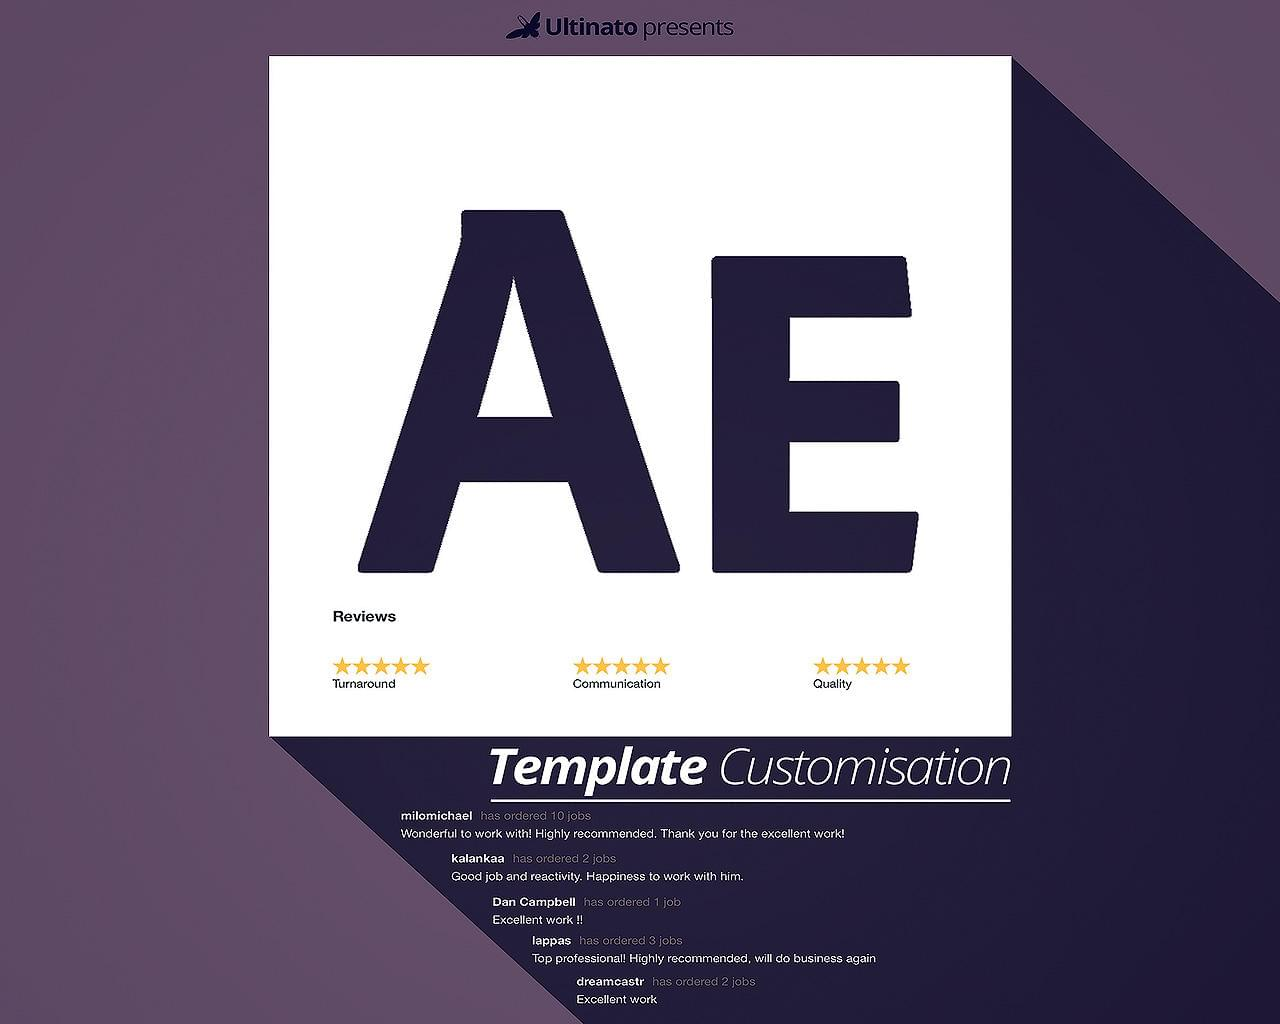 Professional After Effects Template Customisation and rendering  by Ultinato - 111983